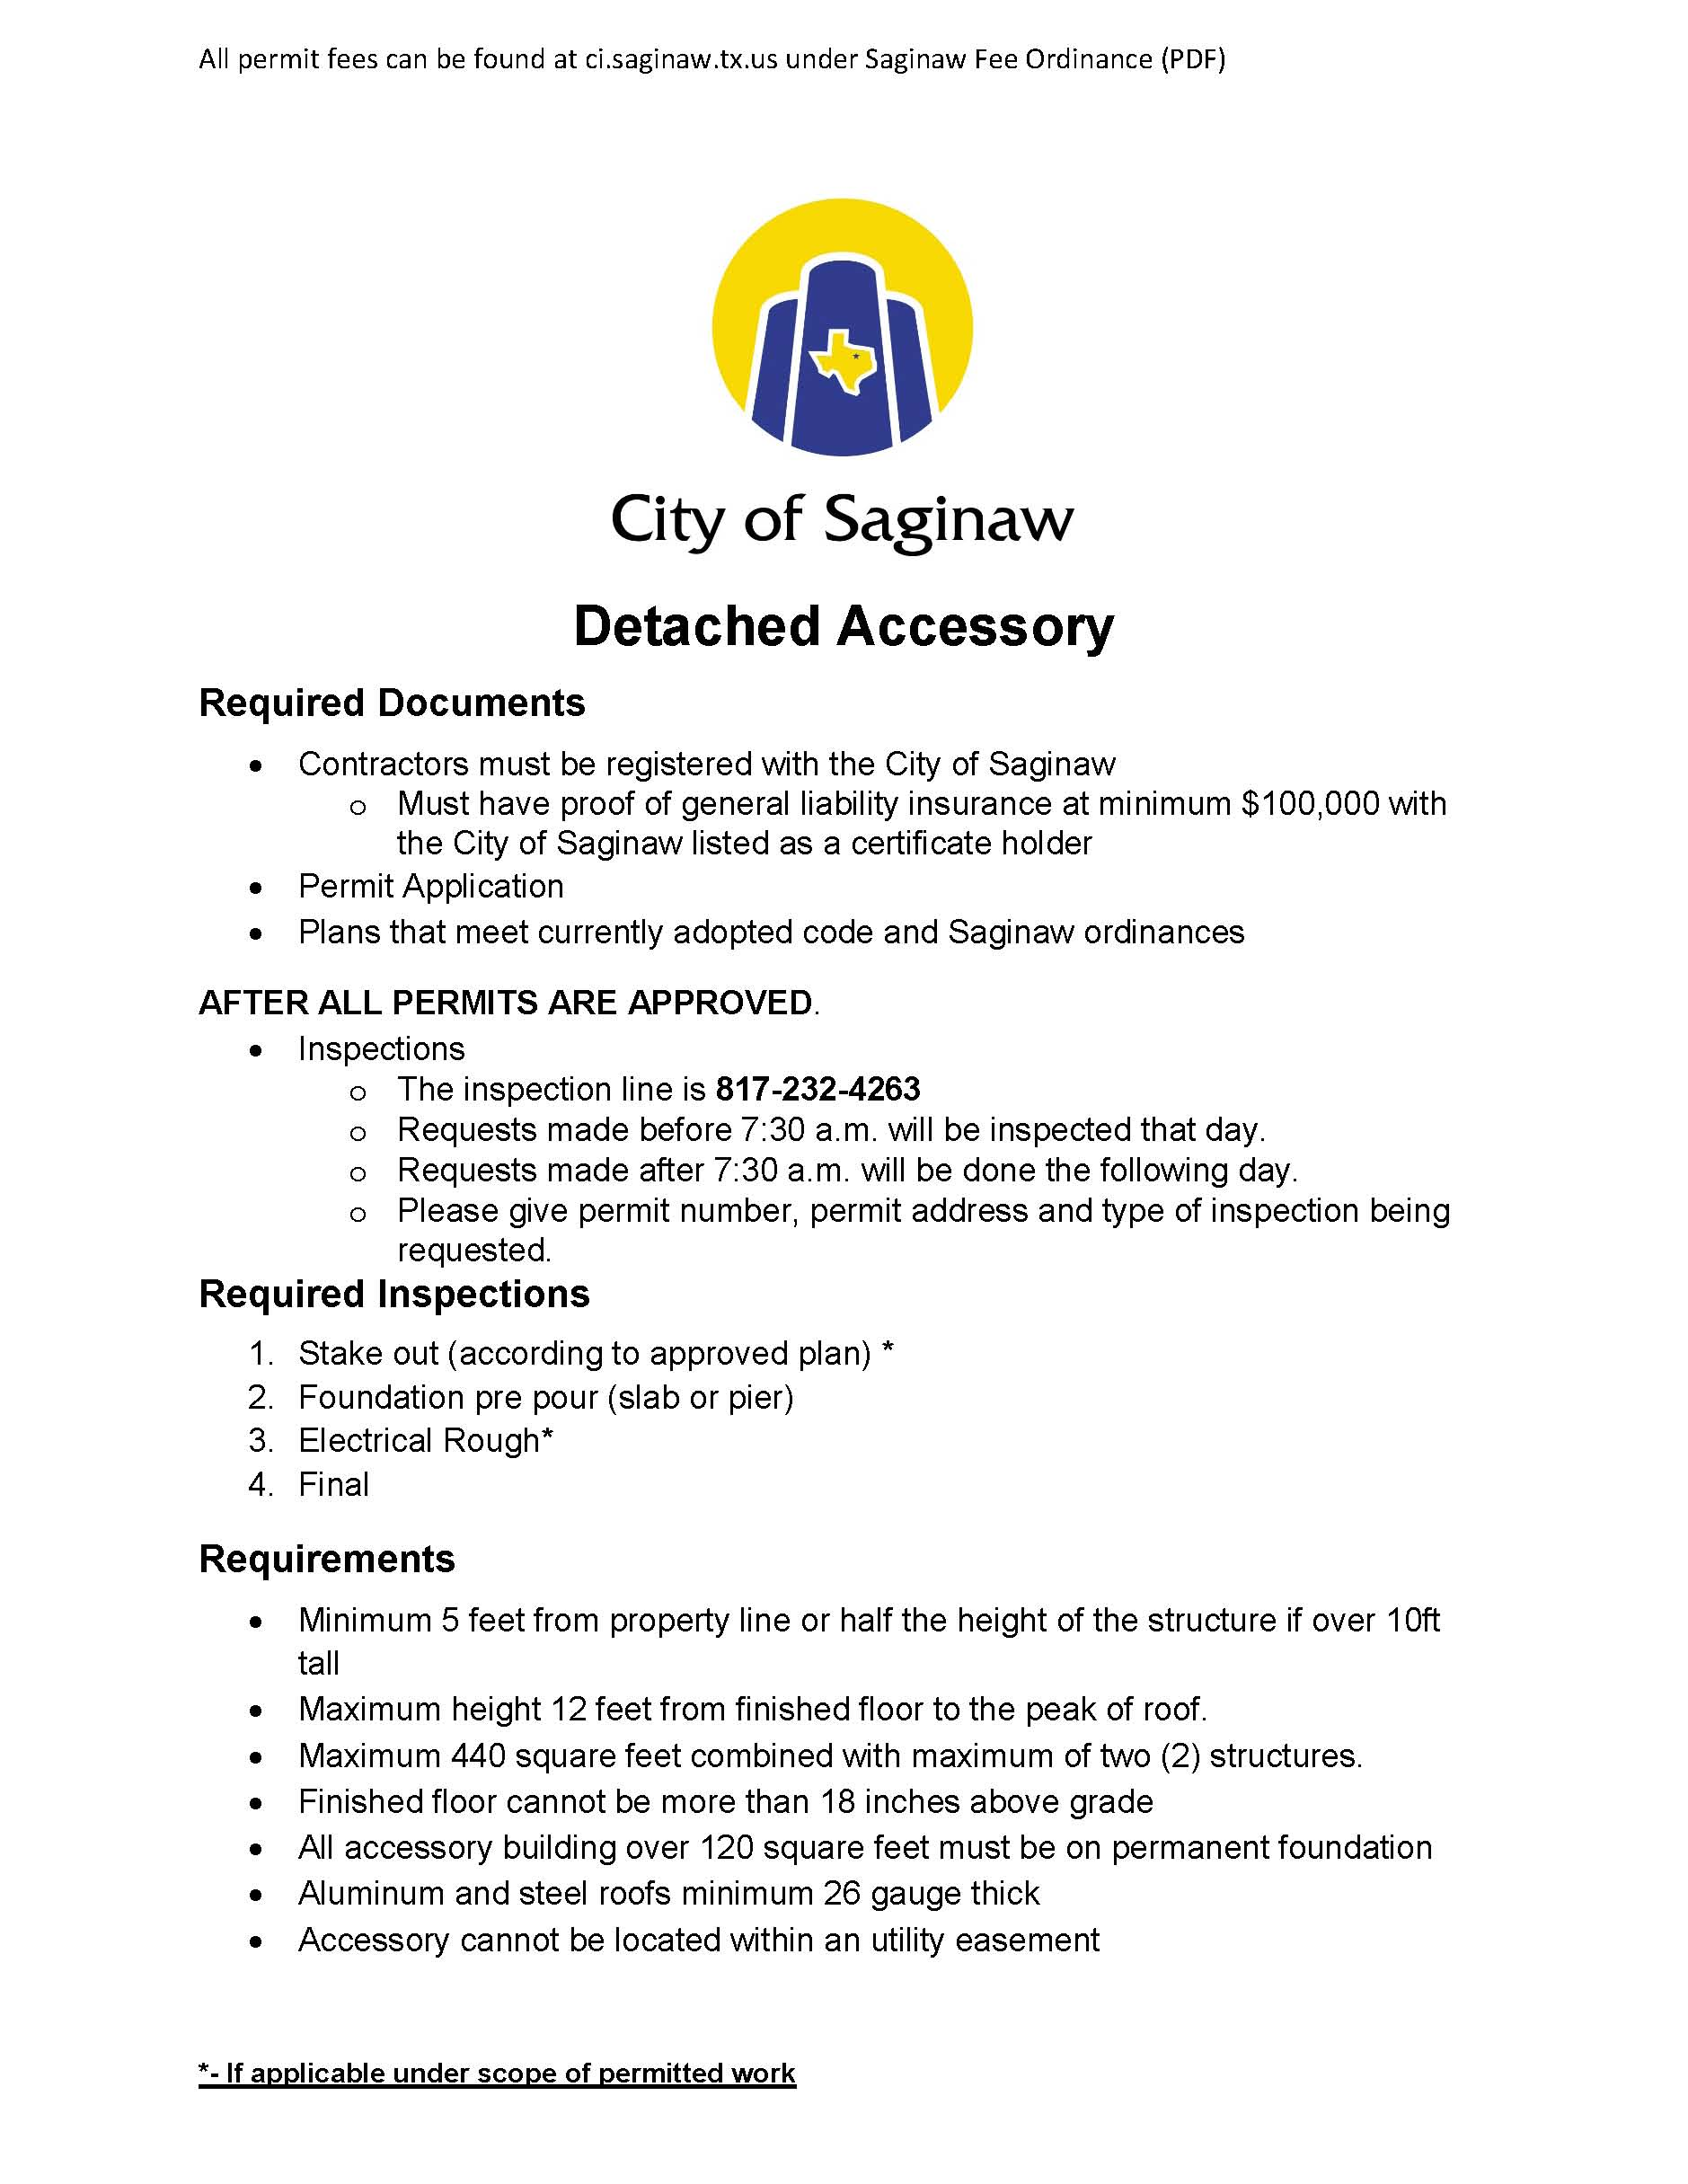 Detached Accessory Permit with handout_Page_1